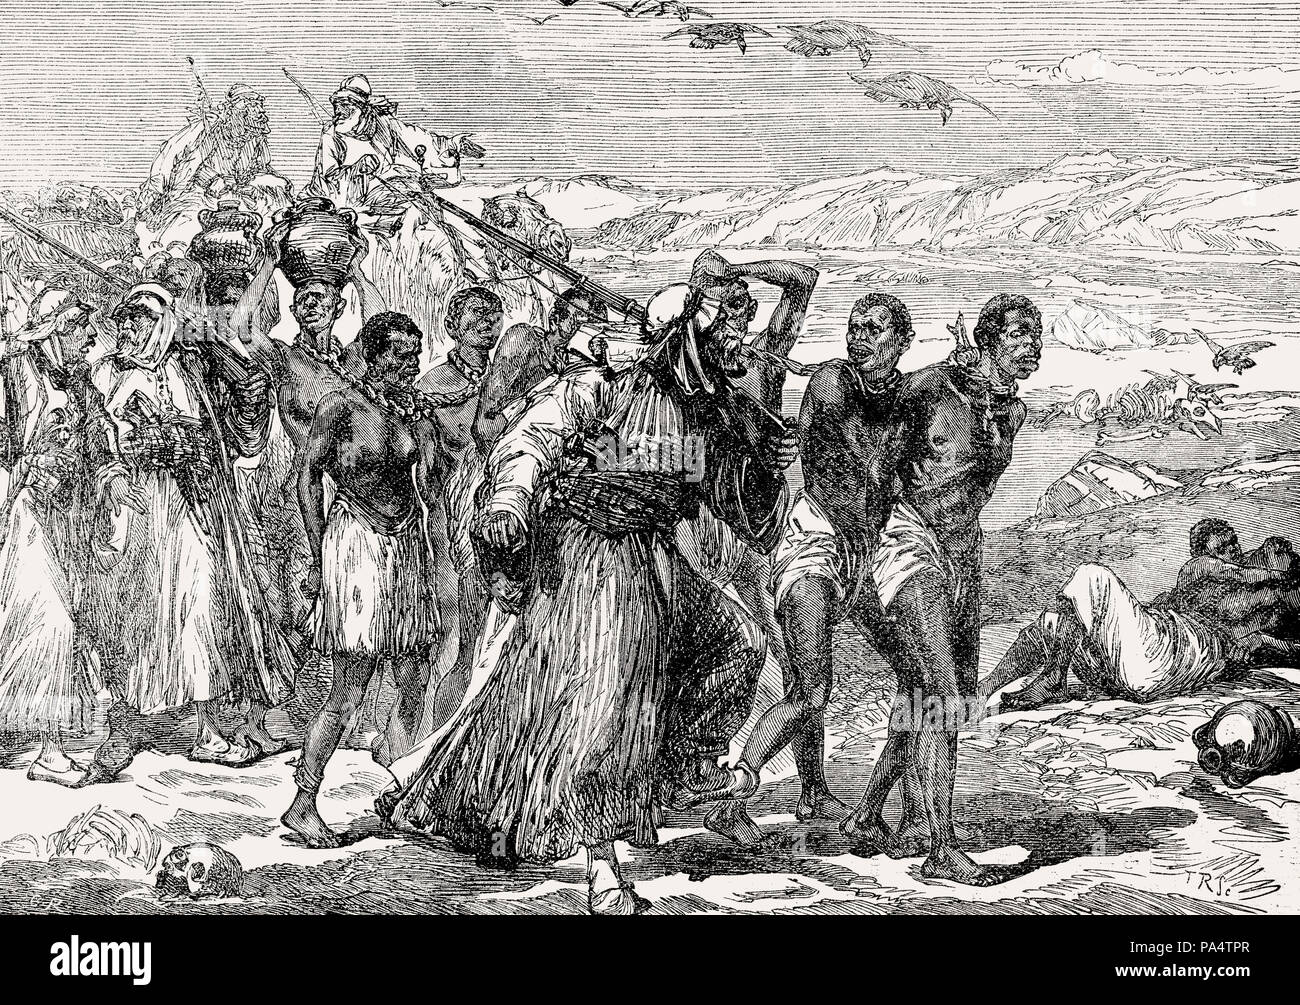 Slaves traversing the African desert, 19th century, From British Battles on Land and Sea, by James Grant - Stock Image